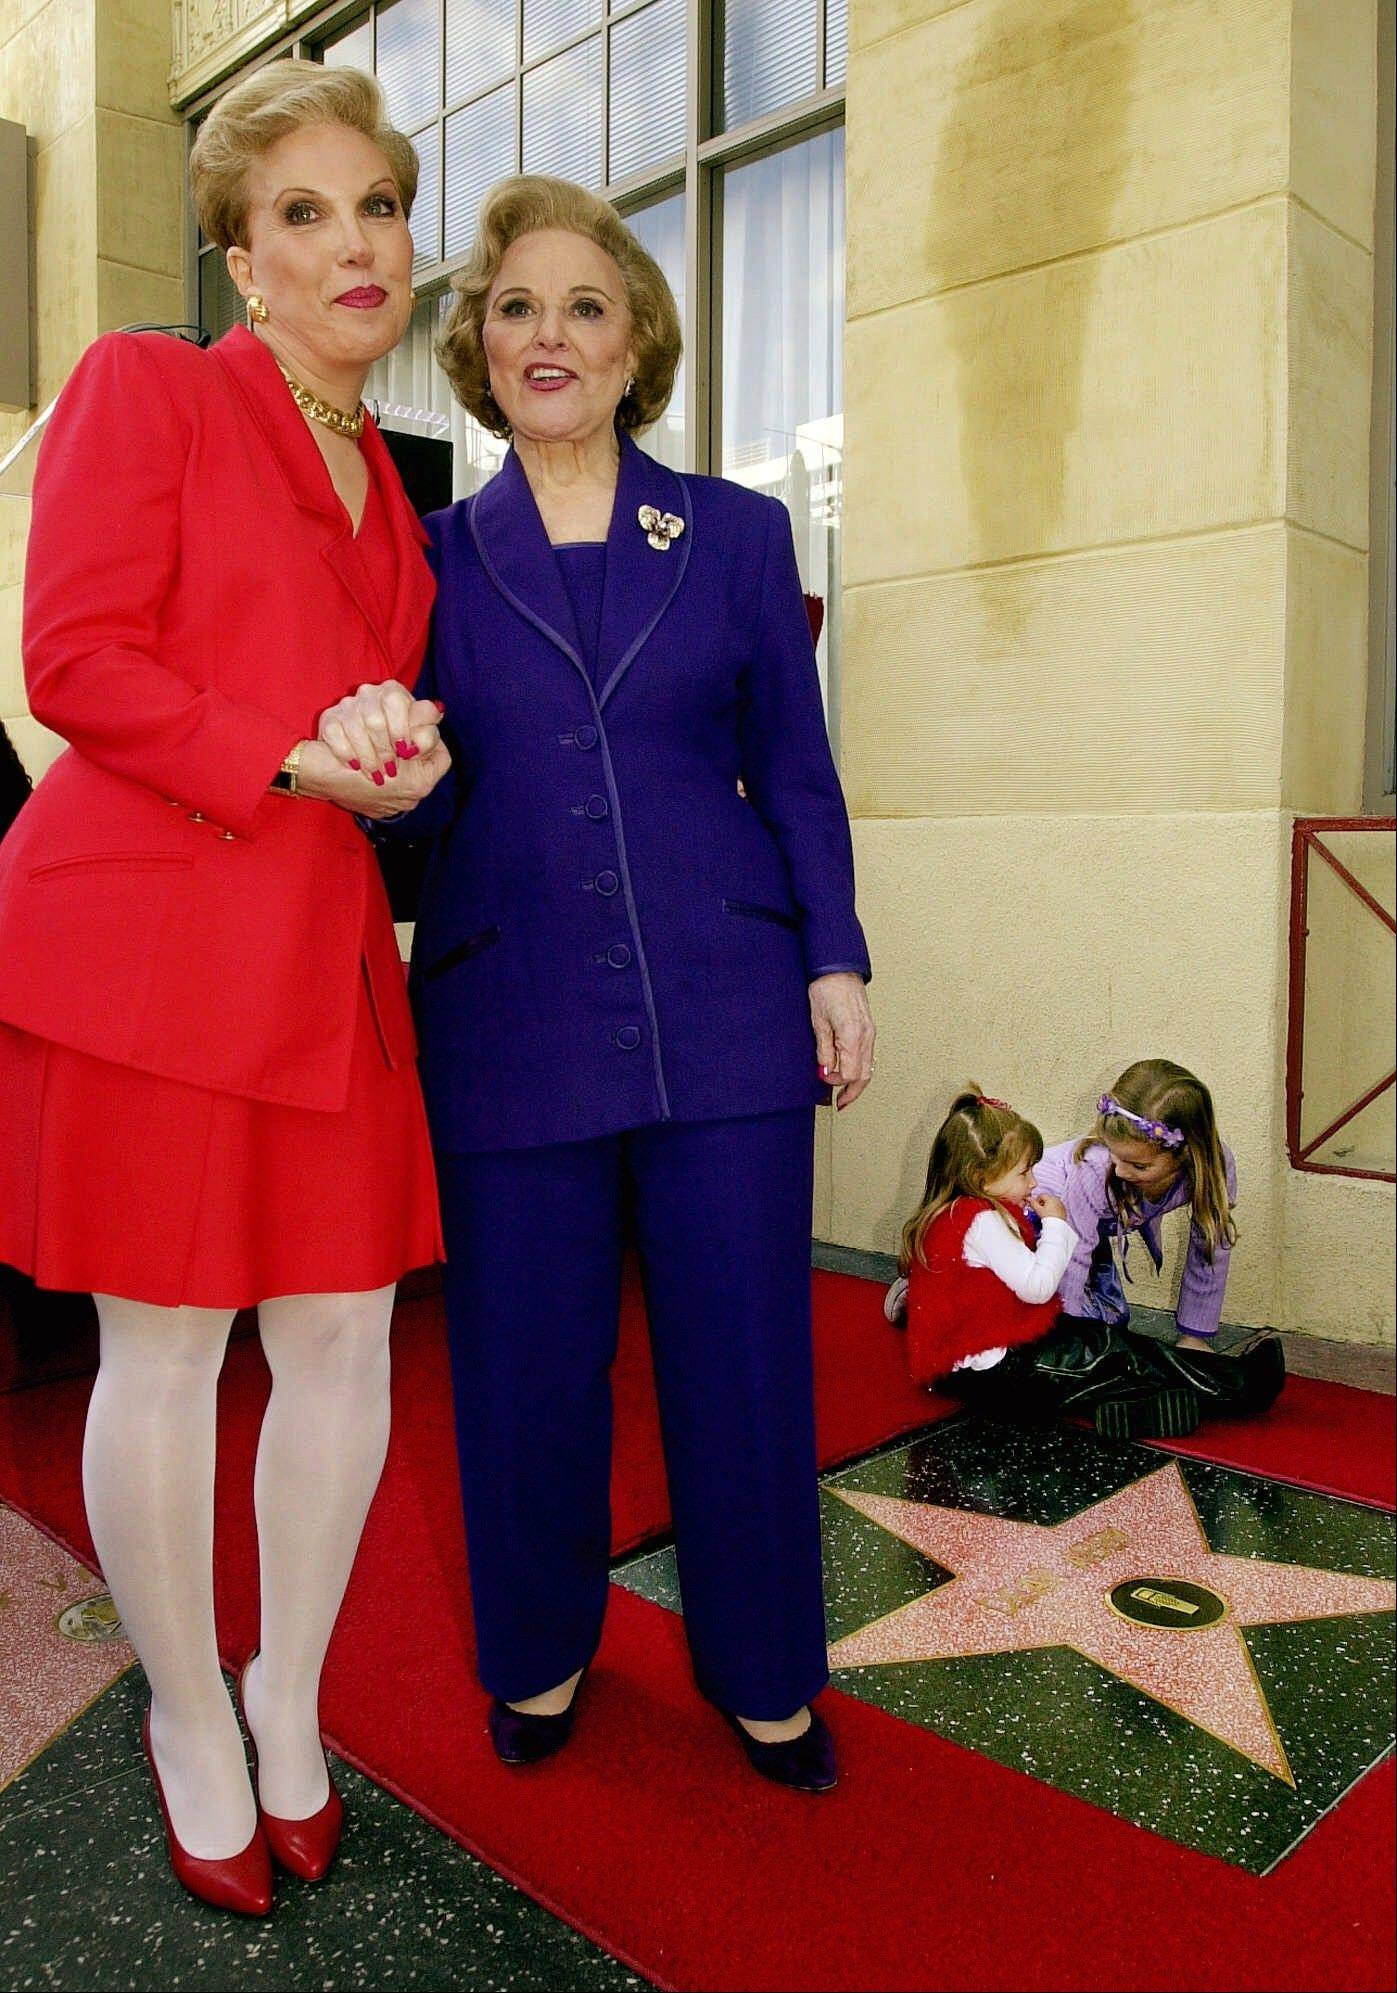 Pauline Friedman Phillips, right, the nationally-syndicated advice columnist best known as �Dear Abby,� and her daughter Jeanne Phillips, pose after the dedication of a Dear Abby star on the Hollywood Walk of Fame in Los Angeles in 2001.